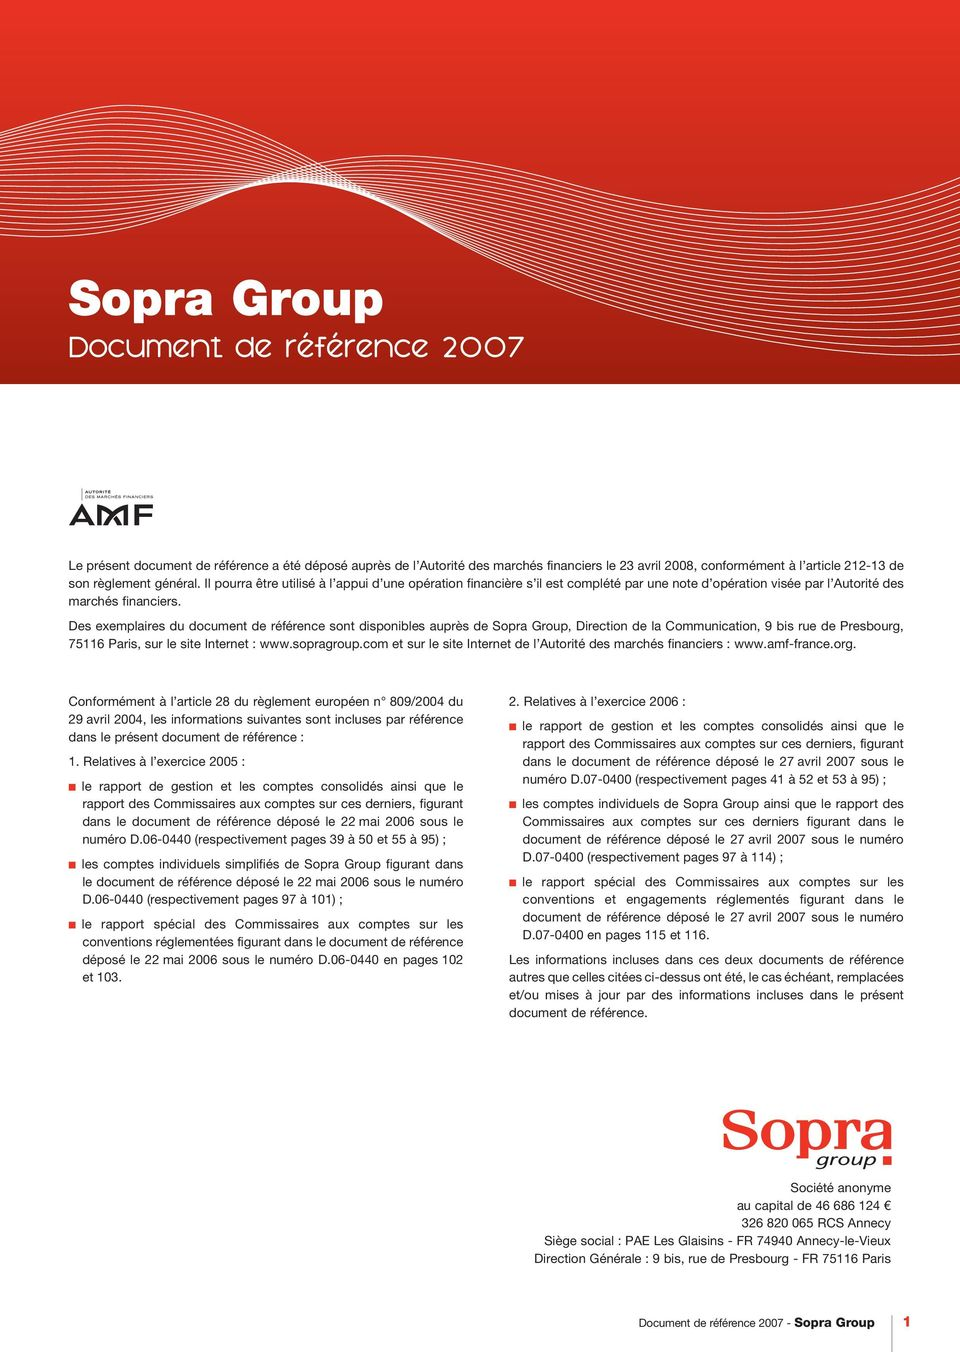 Des exemplaires du document de référence sont disponibles auprès de Sopra Group, Direction de la Communication, 9 bis rue de Presbourg, 75116 Paris, sur le site Internet : www.sopragroup.